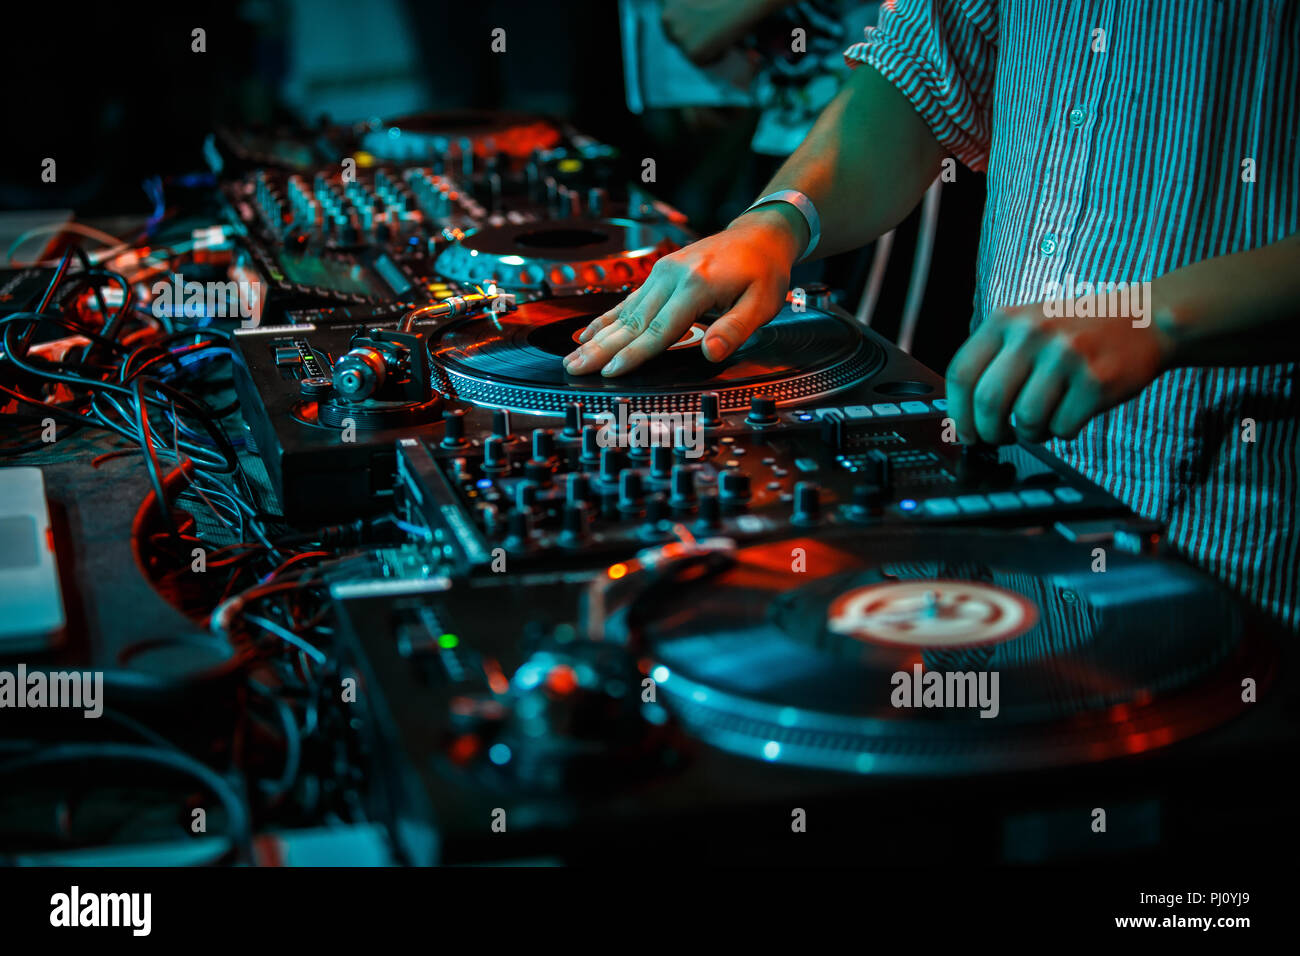 Party dj scratches vinyl record with music on turn table record player in nightclub.Professional club disc jockey scratches records & plays musical se - Stock Image